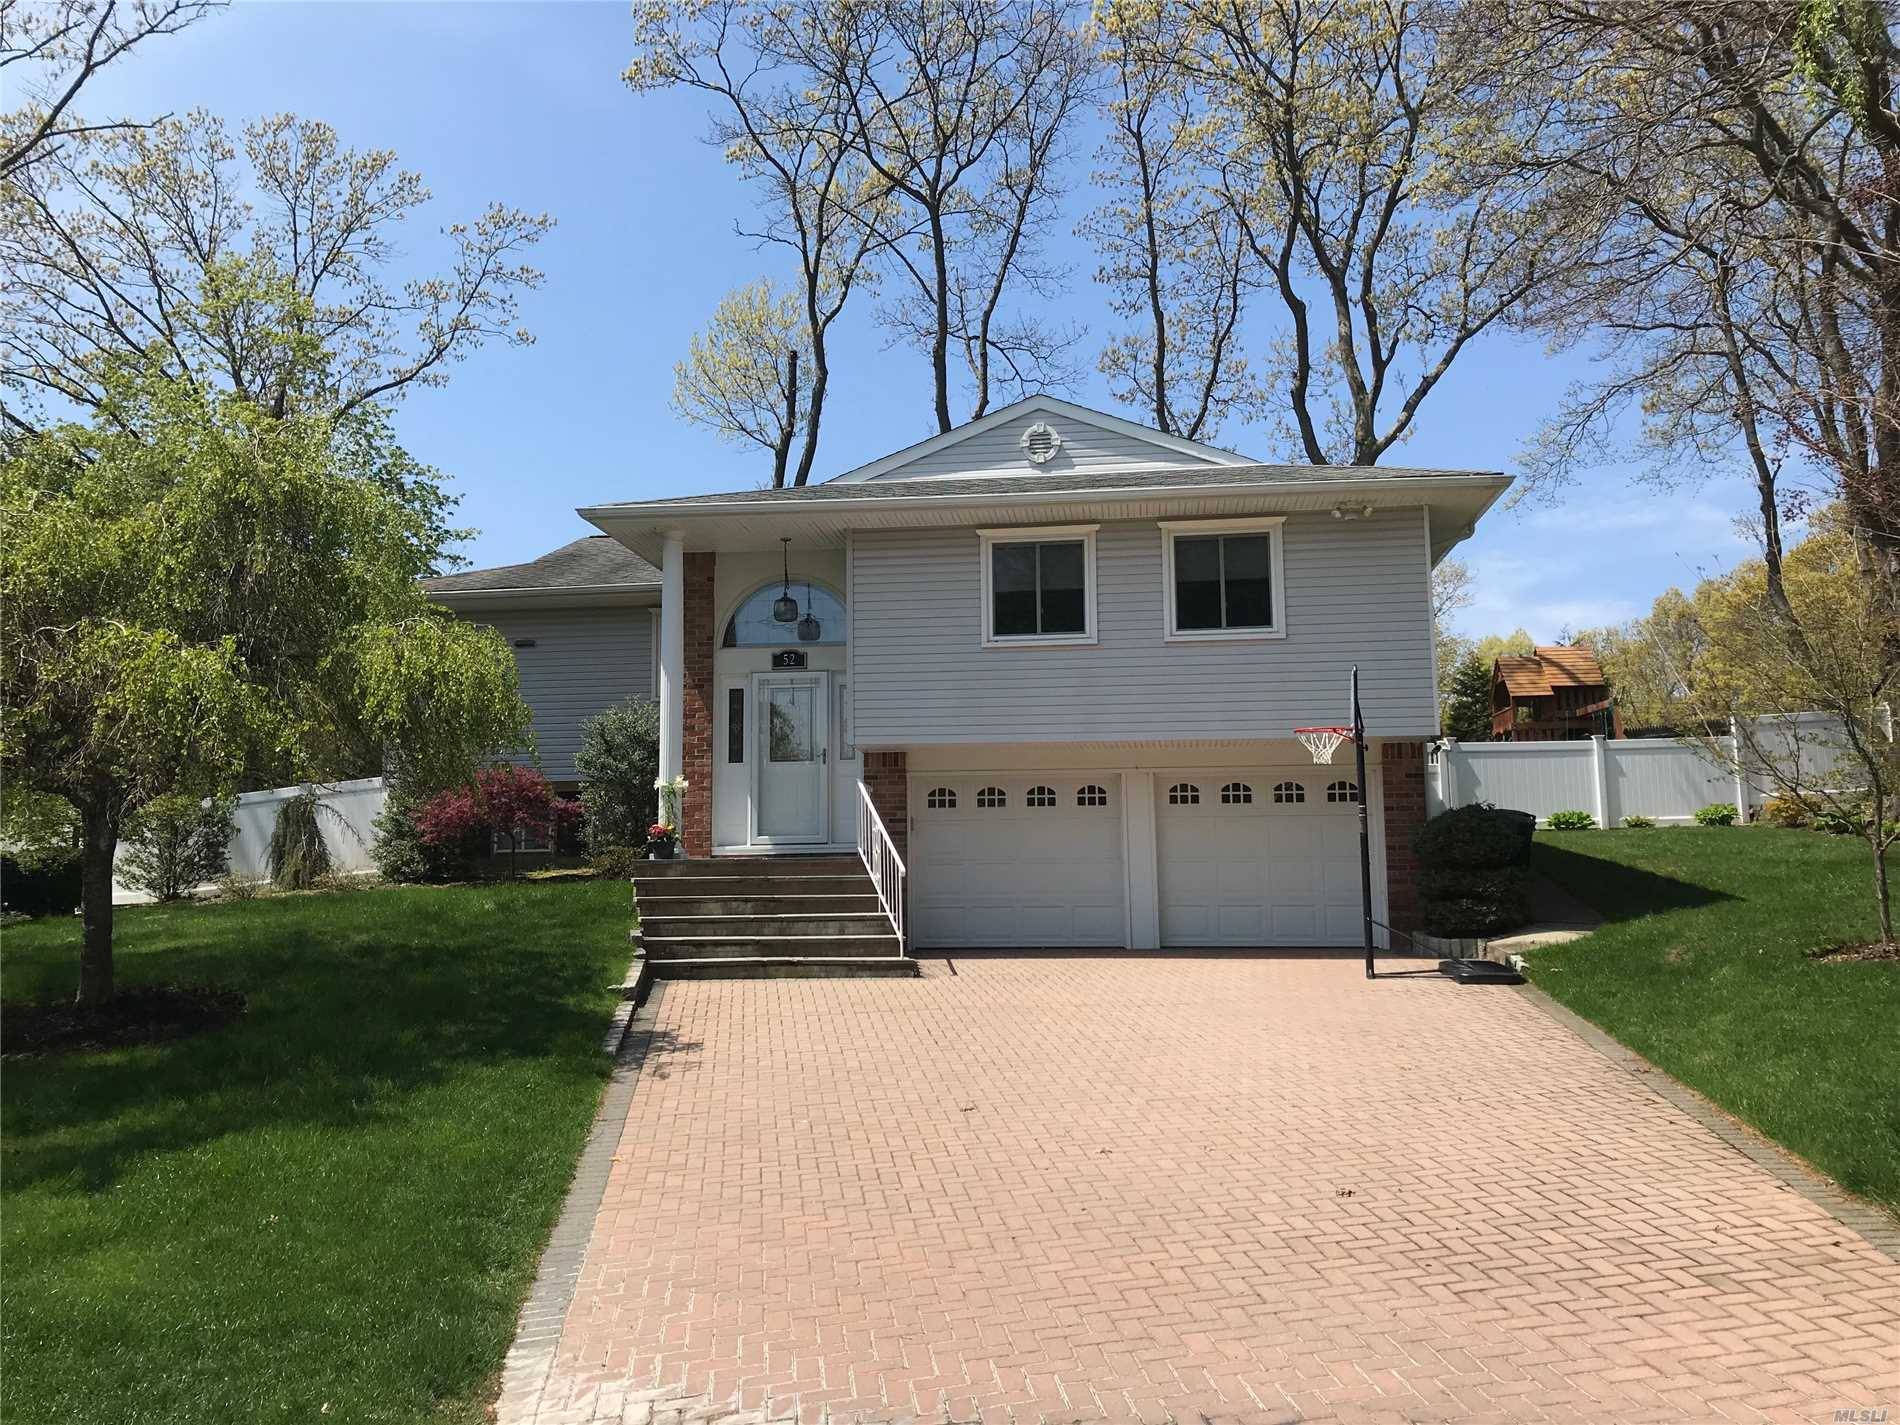 Diamond Condition Raised Ranch in Desirable Pickwick Development w/Private Beach. Kitchen w/Lots of Cabinets, SS Appliances & Pantry, Liv Rm w/Brick Wood Burning Fpl. & Cathedral Ceiling, Dining Rm w/Slider to Deck, Den/Playroom, Bath Updates, 2 Car Garage w/New Doors & Openers, Central A/C, Engineered Wood Floors, Thermopane Windows, Arch. Roof, Newer Vinyl Siding, Front Storm & Doors, Nice Yard w/Cement Patio, Deck,  Shed, IGS, Wooden Play Set & Room for a Pool. Nice Street & Close to Town.